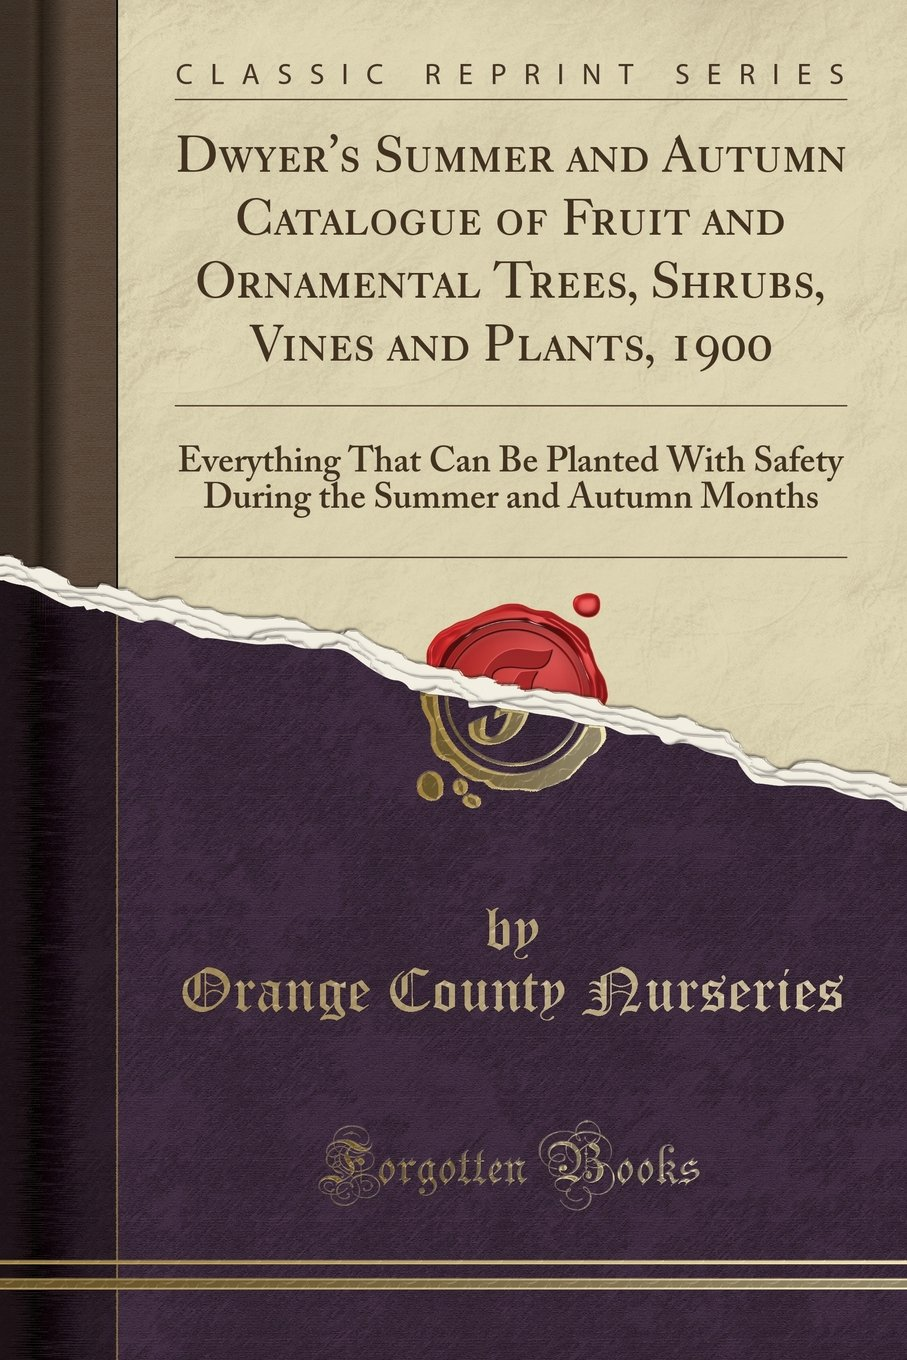 Download Dwyer's Summer and Autumn Catalogue of Fruit and Ornamental Trees, Shrubs, Vines and Plants, 1900: Everything That Can Be Planted With Safety During the Summer and Autumn Months (Classic Reprint) PDF